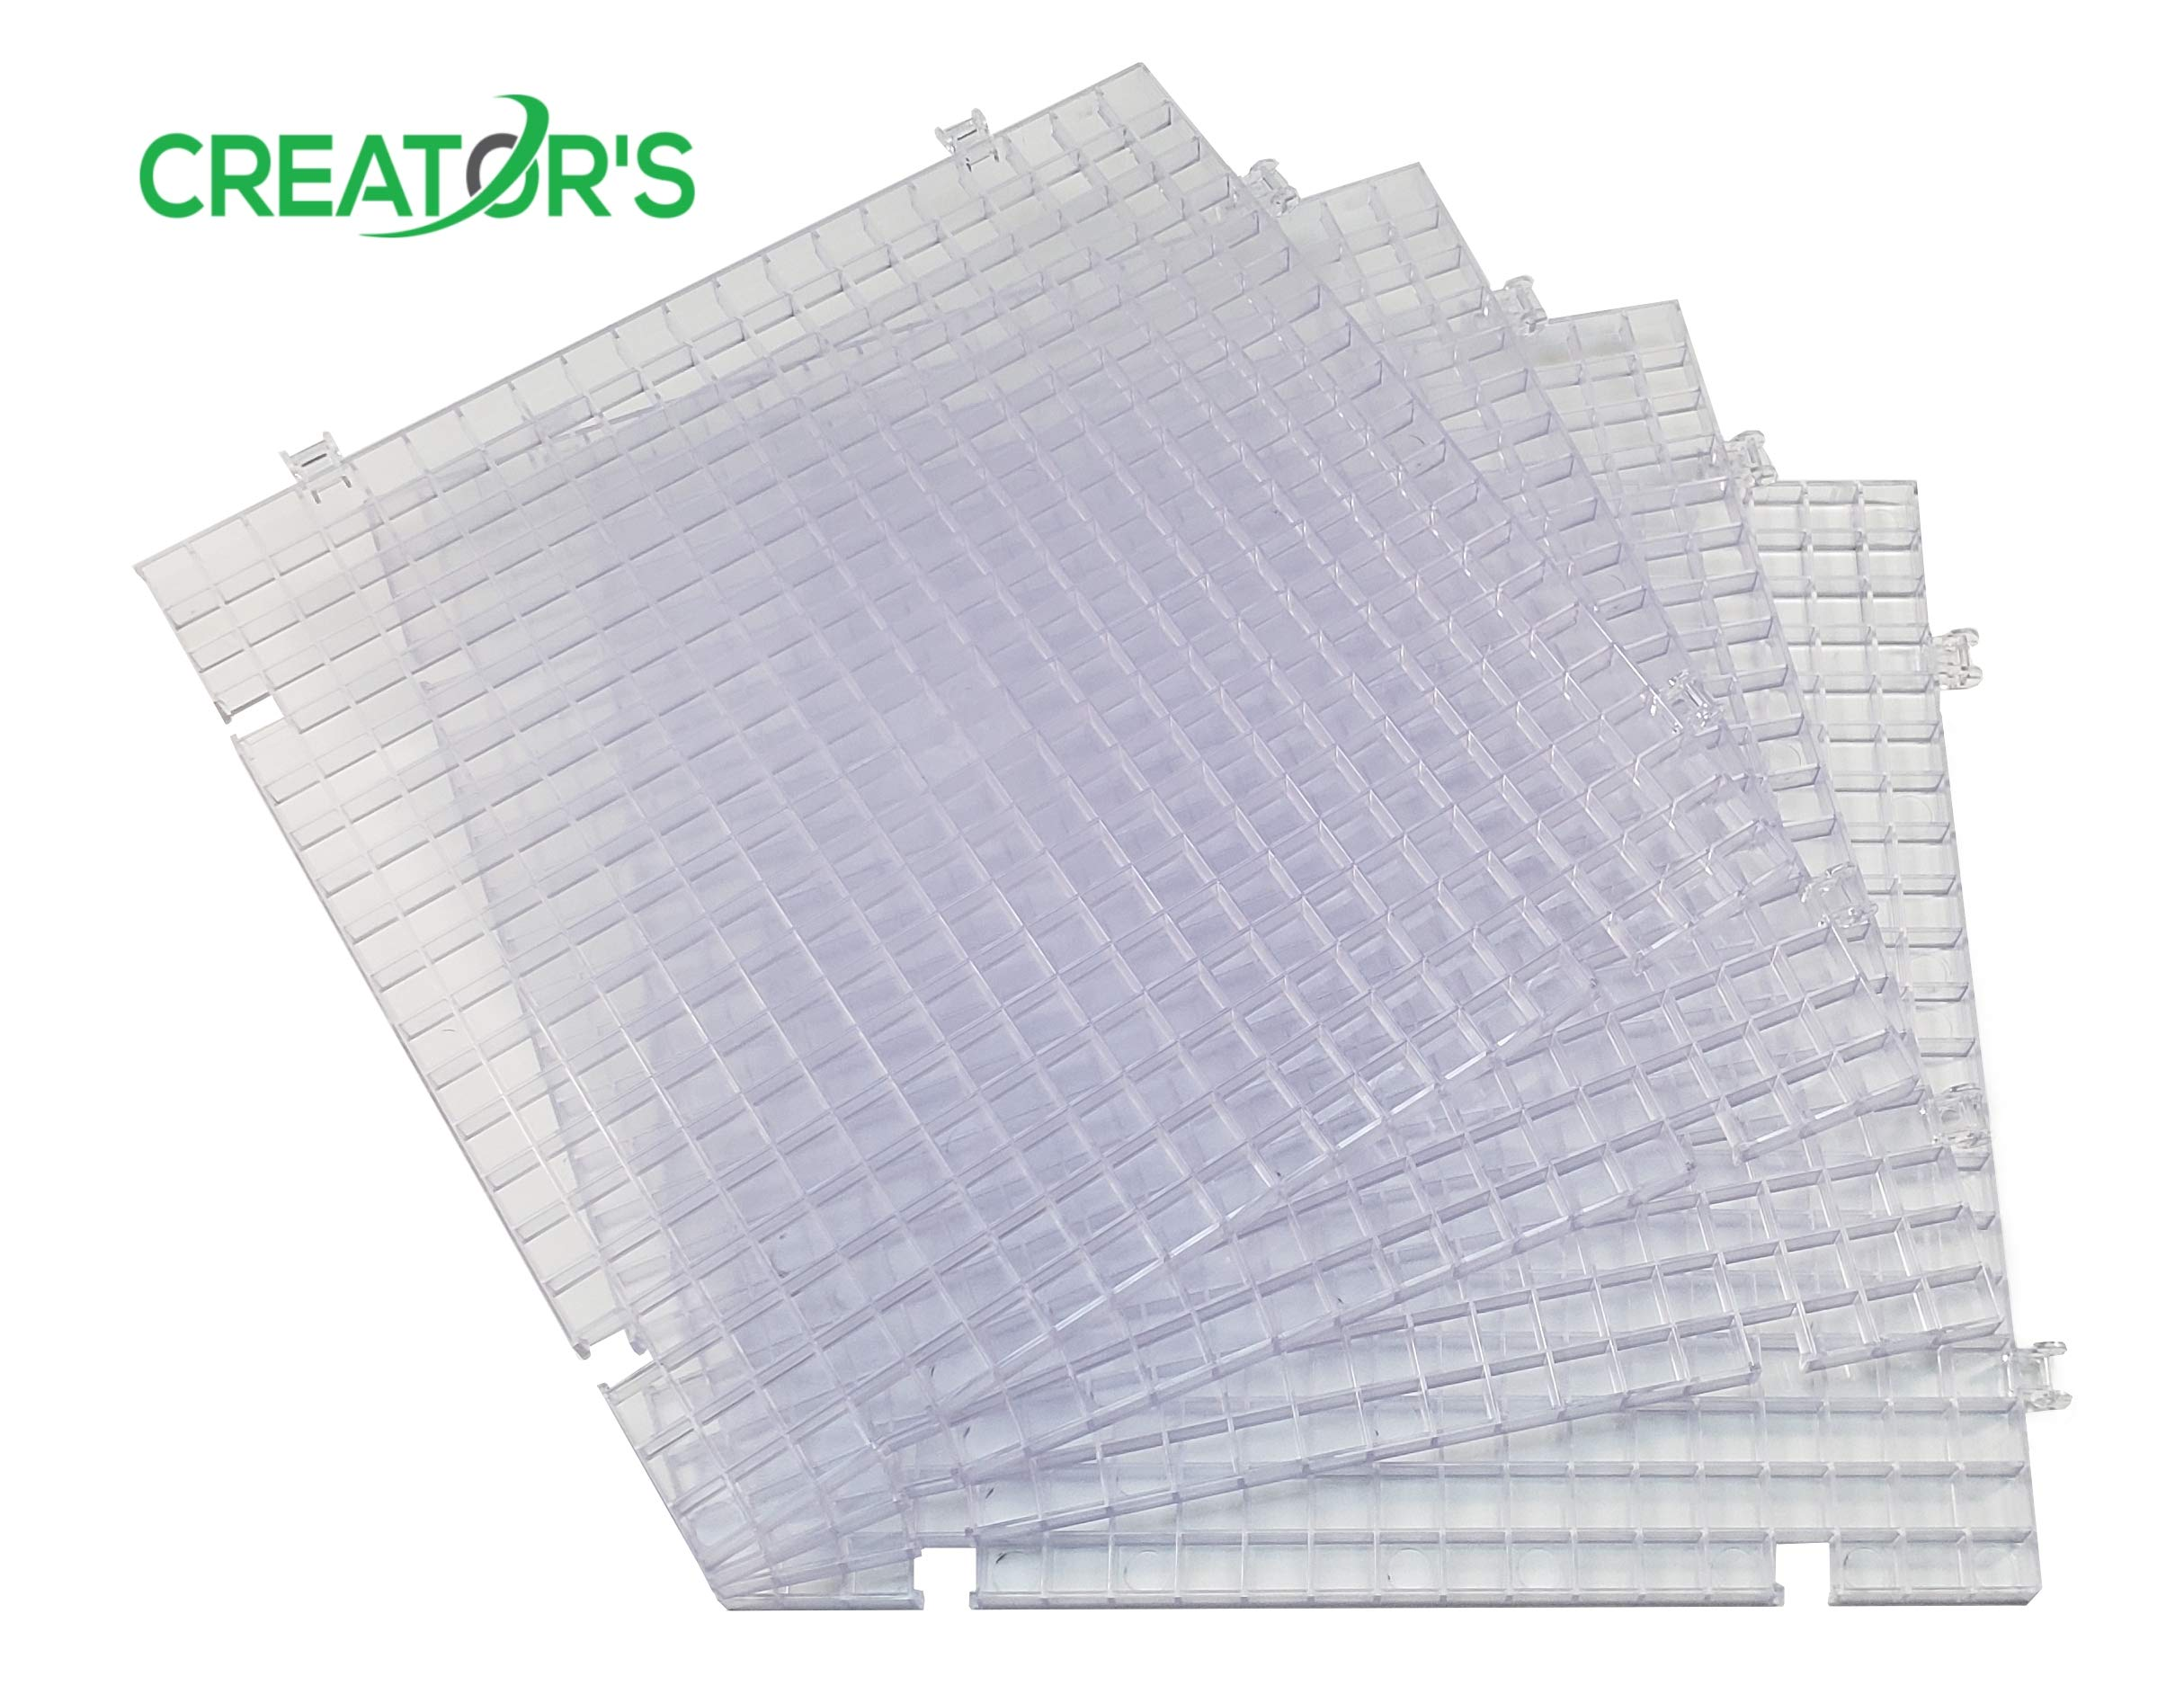 Creator's Waffle Grid 4-Pack - Solid Bottom Translucent/Clear Modular Surface - Glass Cutting, Small Parts, Liquid Containment, Grow Room, Etc. - For Home, Office, Shop - Works With Creator's Products by Creator's